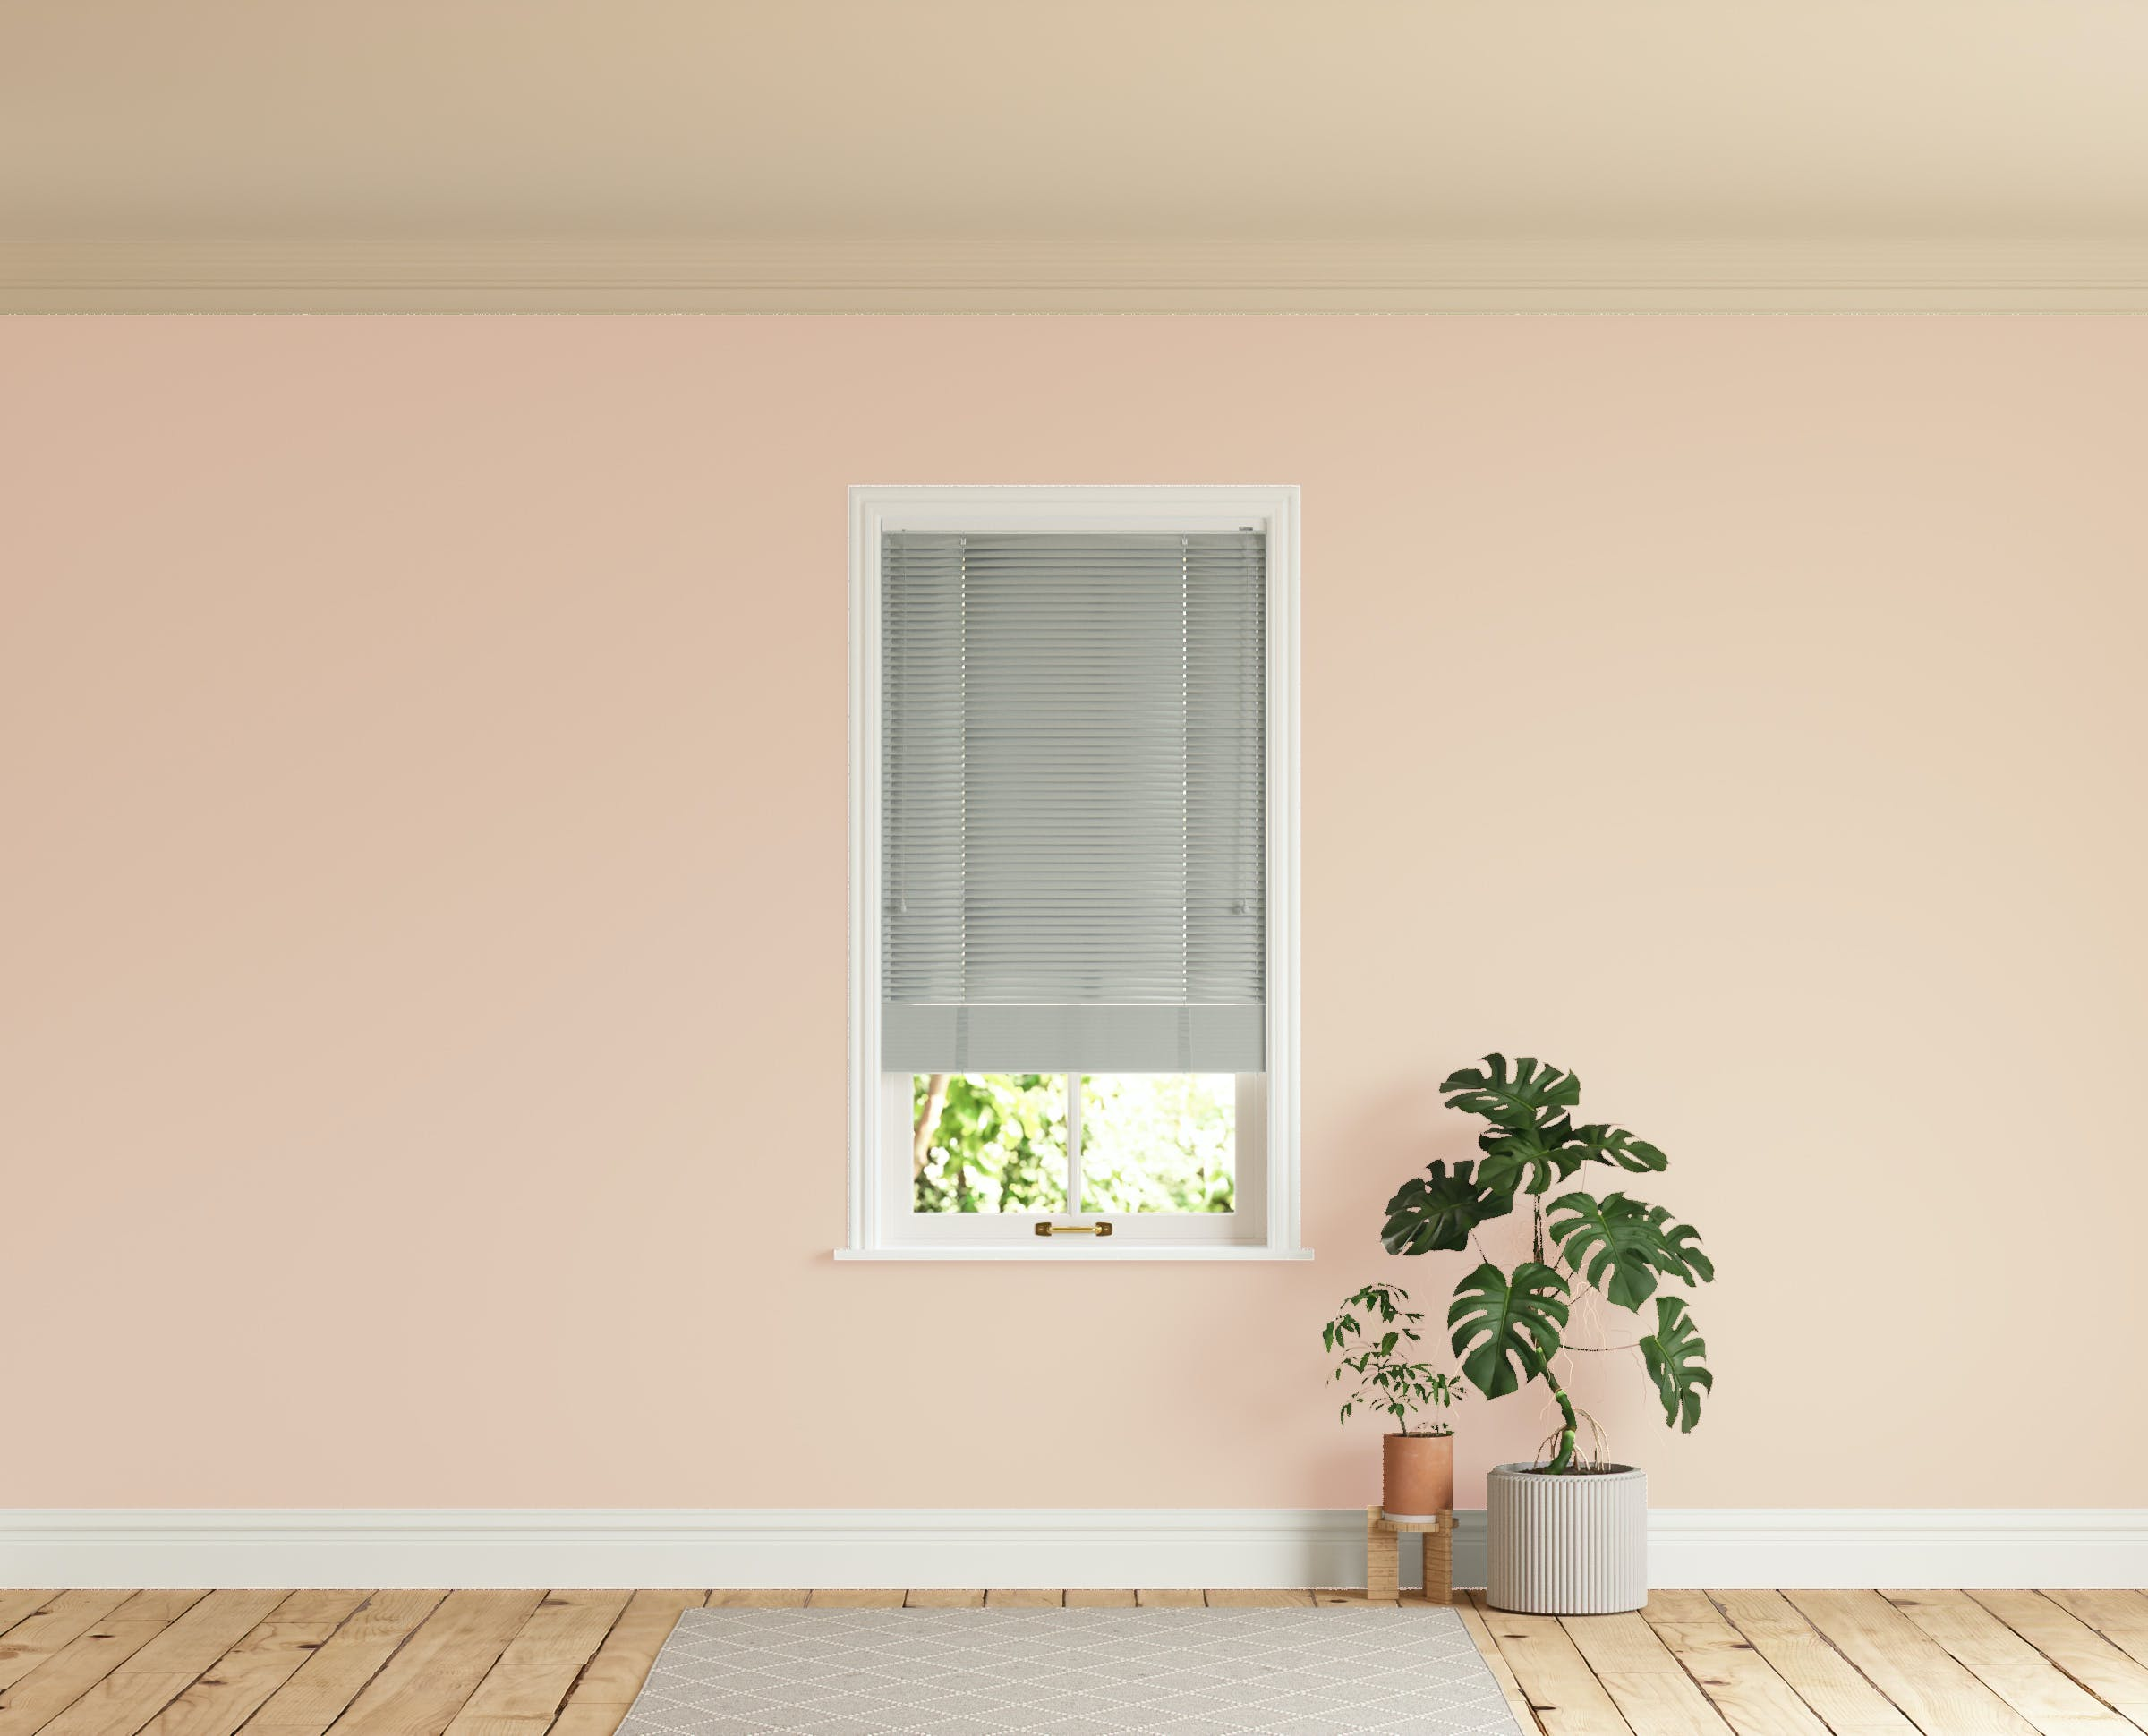 Room with walls painted in Lick Pink 02 and Grey 04 Venetian blinds